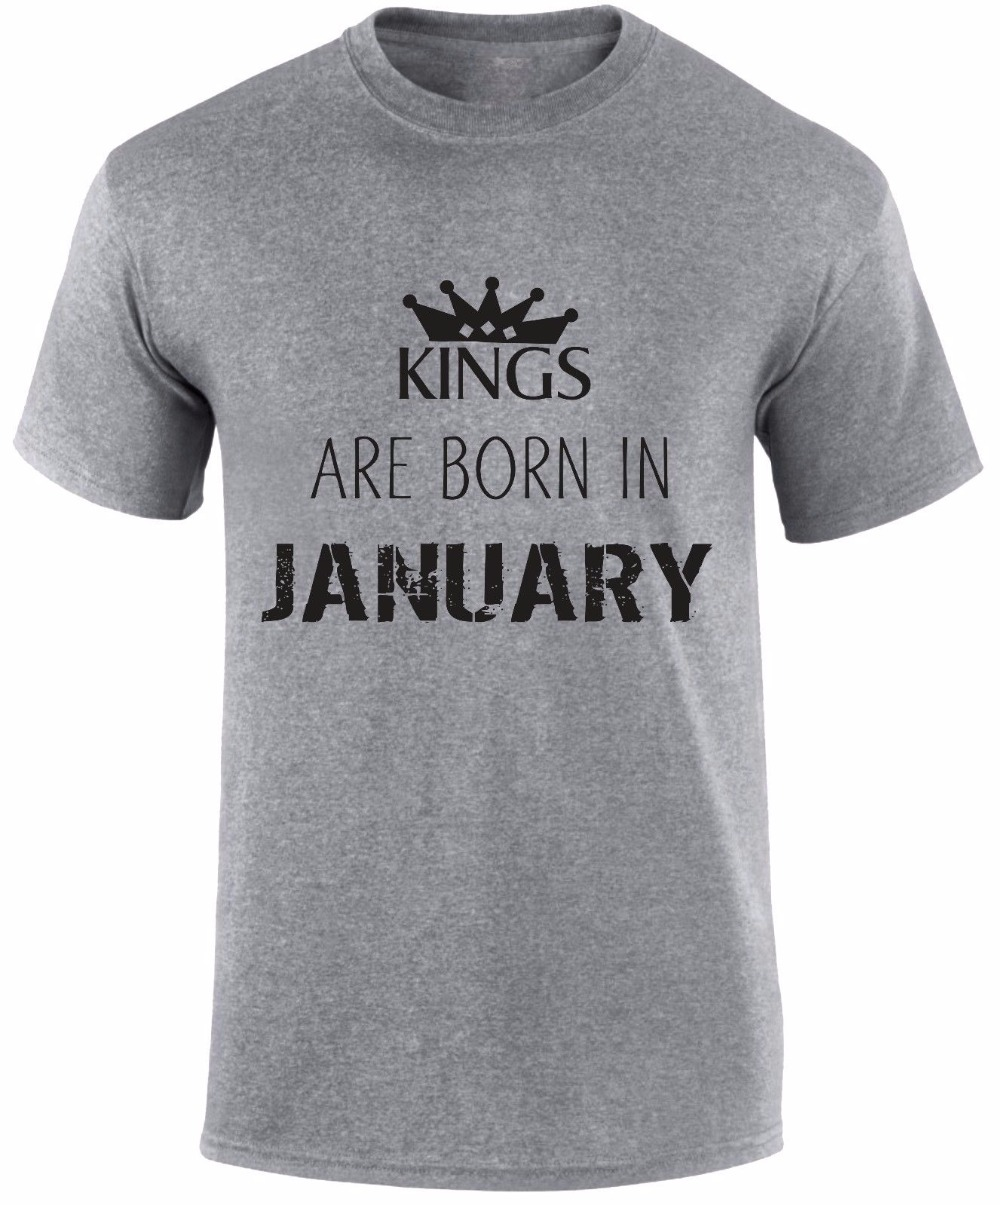 1418bcc2 2019 New Men's T Shirt Fashion Free Shipping Kings Are Born In January  Birthday Month Of Birth Royalty Party Slogan Men T Shirt